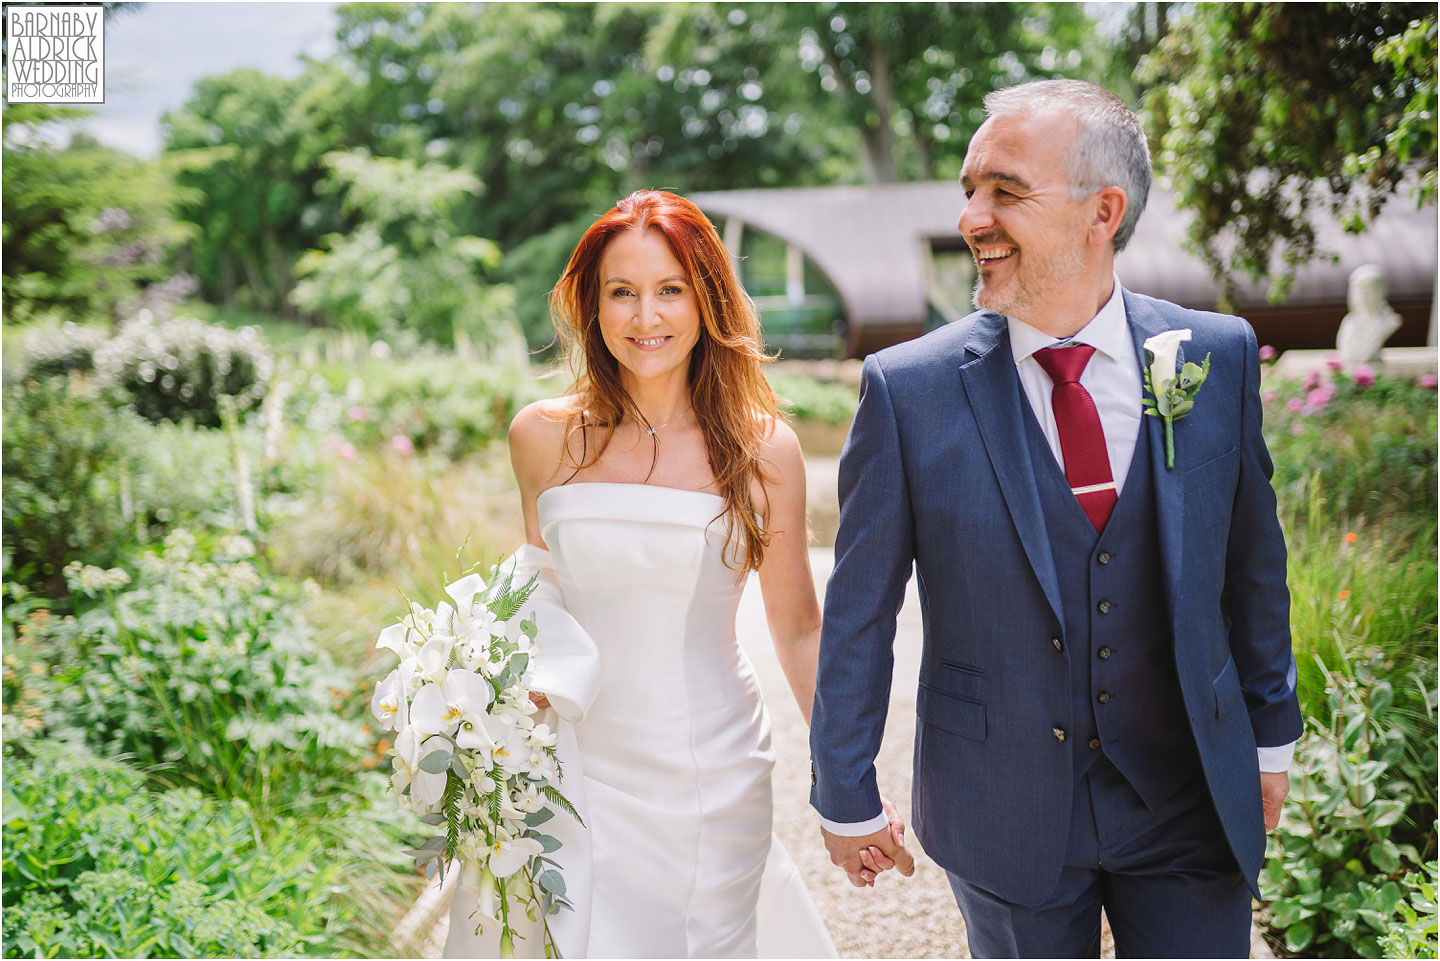 Bowcliffe hall wedding couple portrait photograph by the Blackburn Wing